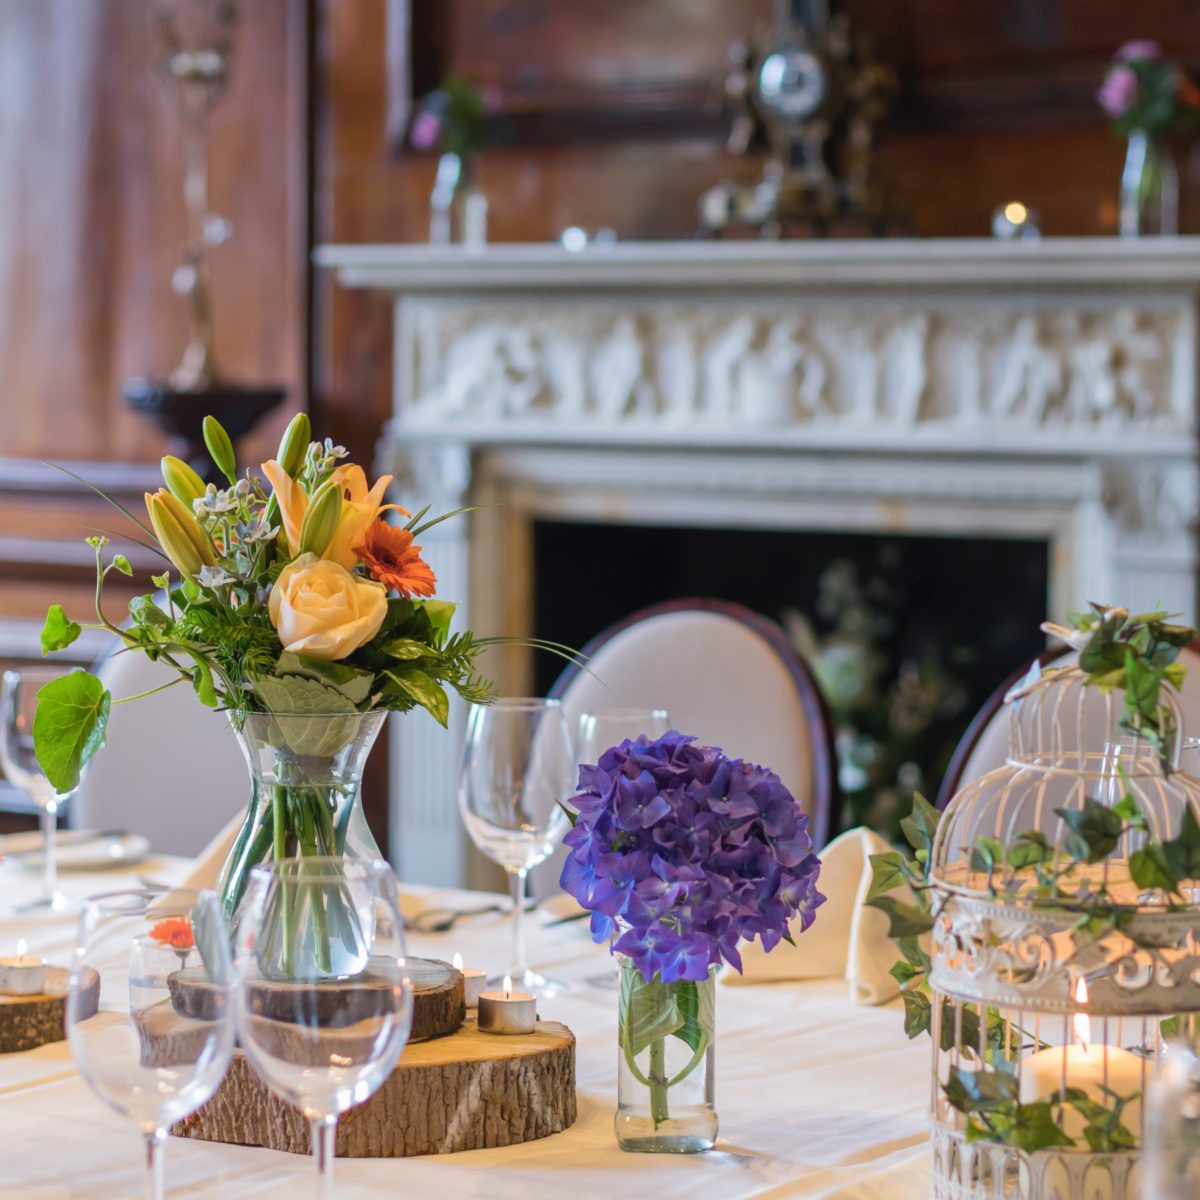 Private dining room at coombe abbey